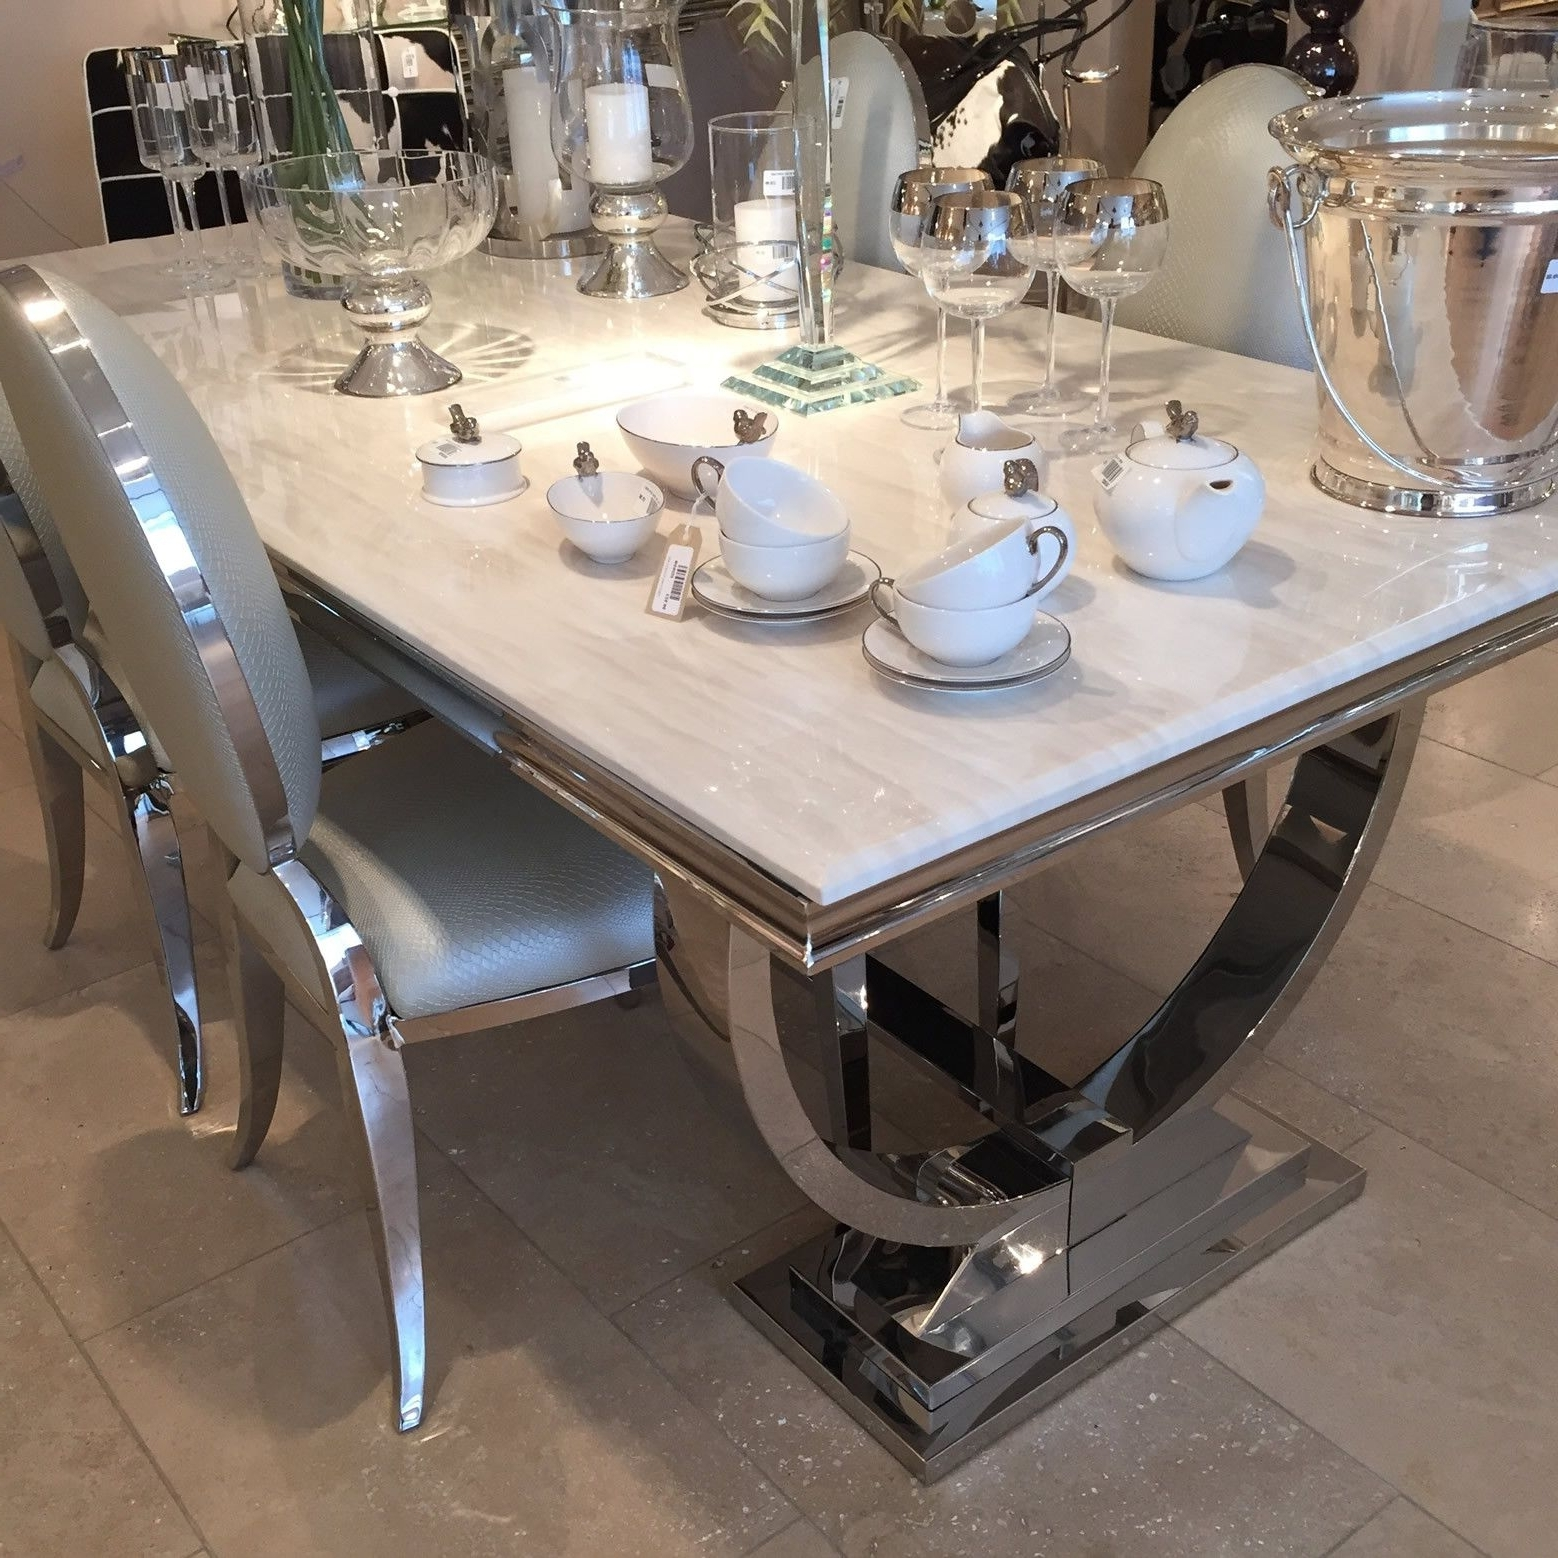 Chrome Dining Room Chairs Pertaining To Most Current Cream Marble And Chrome Dining Table With U Shaped Legs (View 6 of 25)